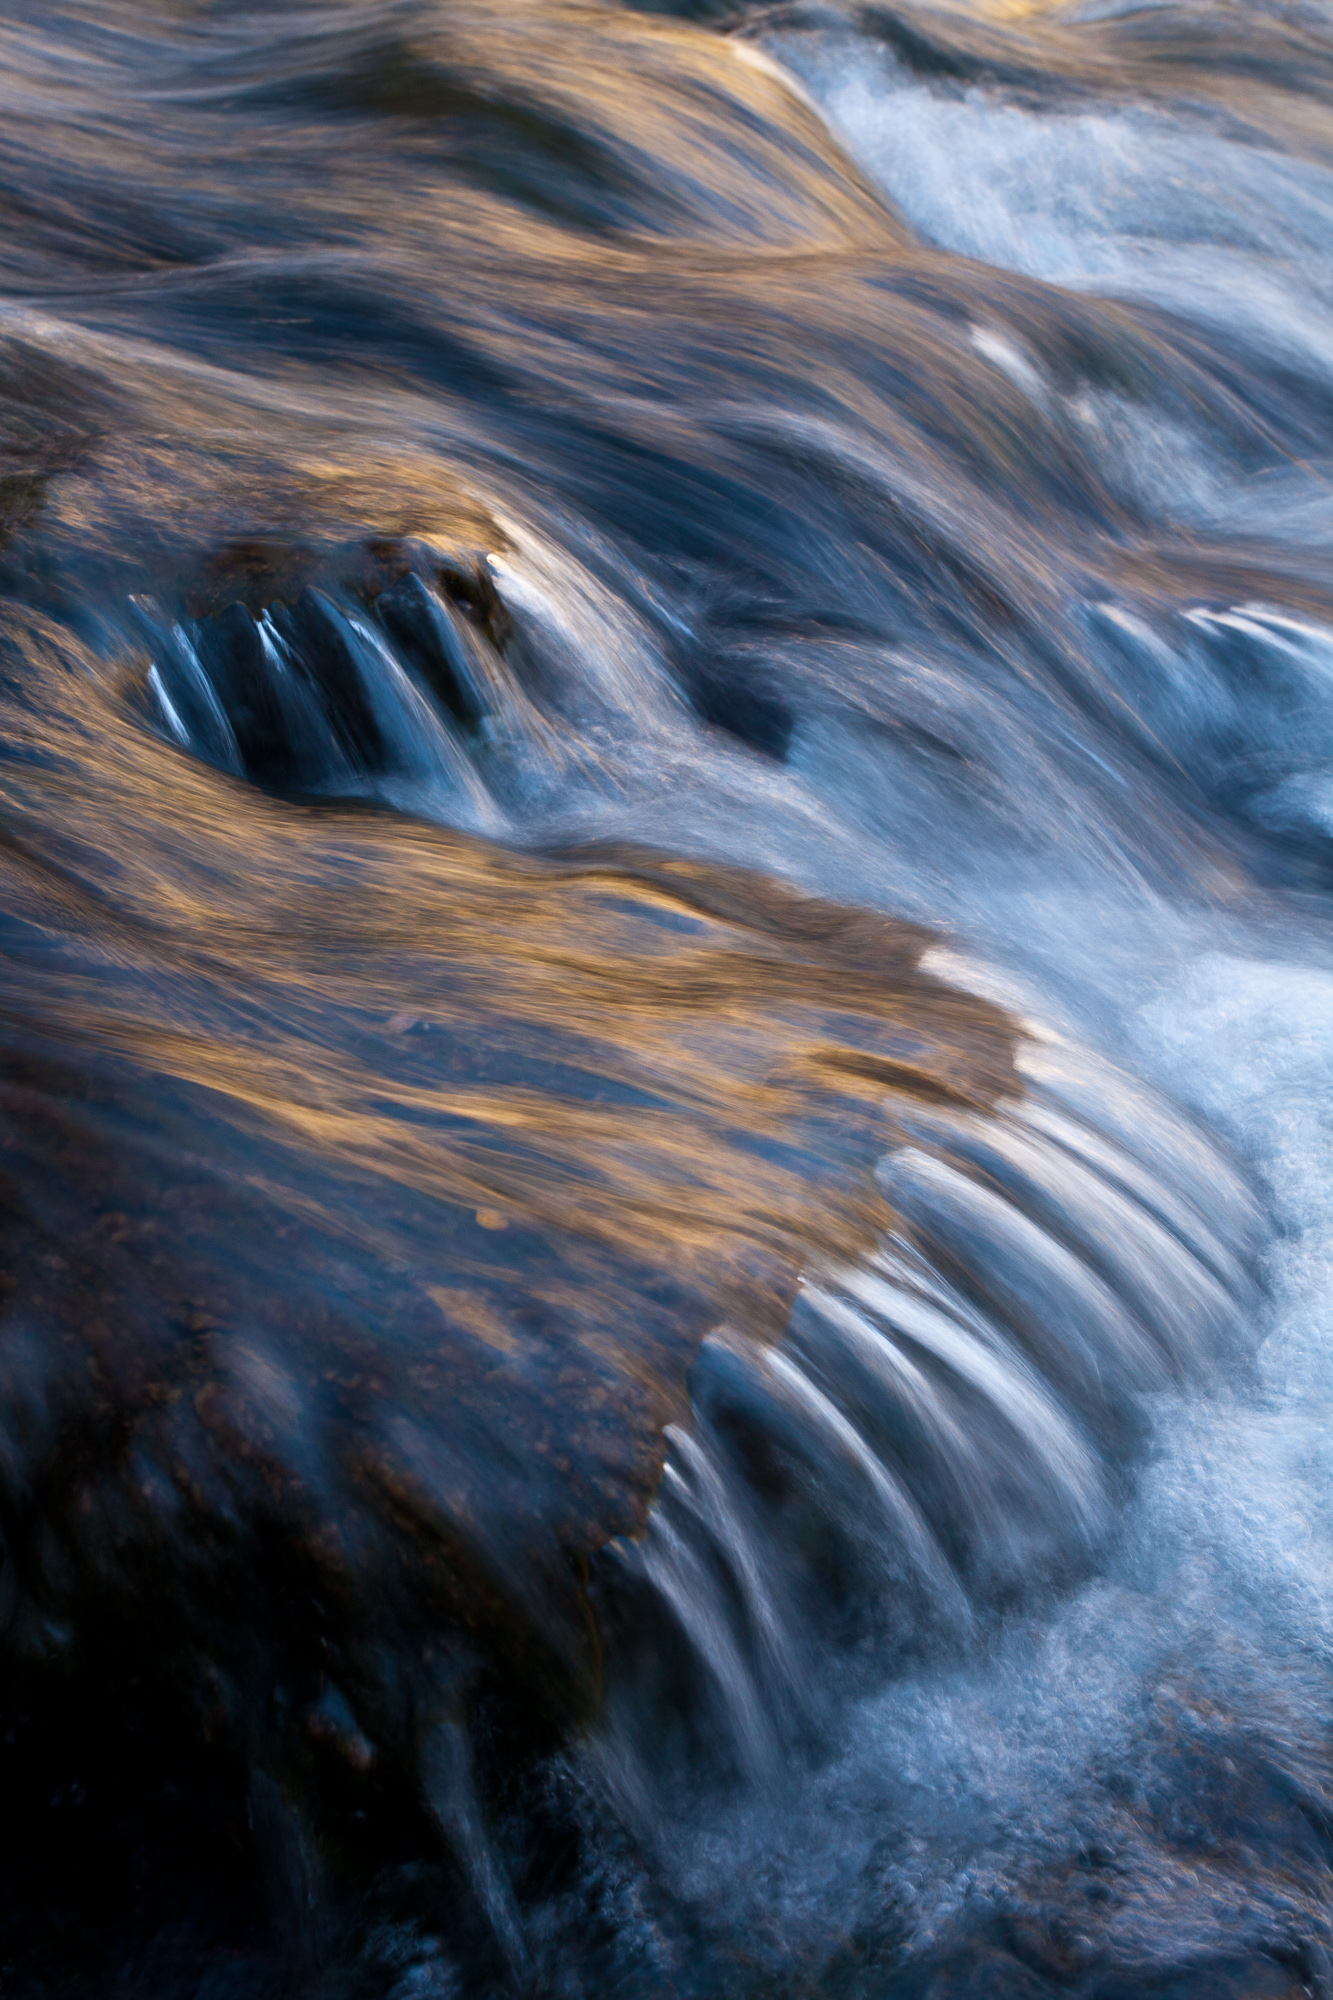 Silken water reflects the gold colors of fall, South Fork Bishop Creek, Inyo National Forest, CA